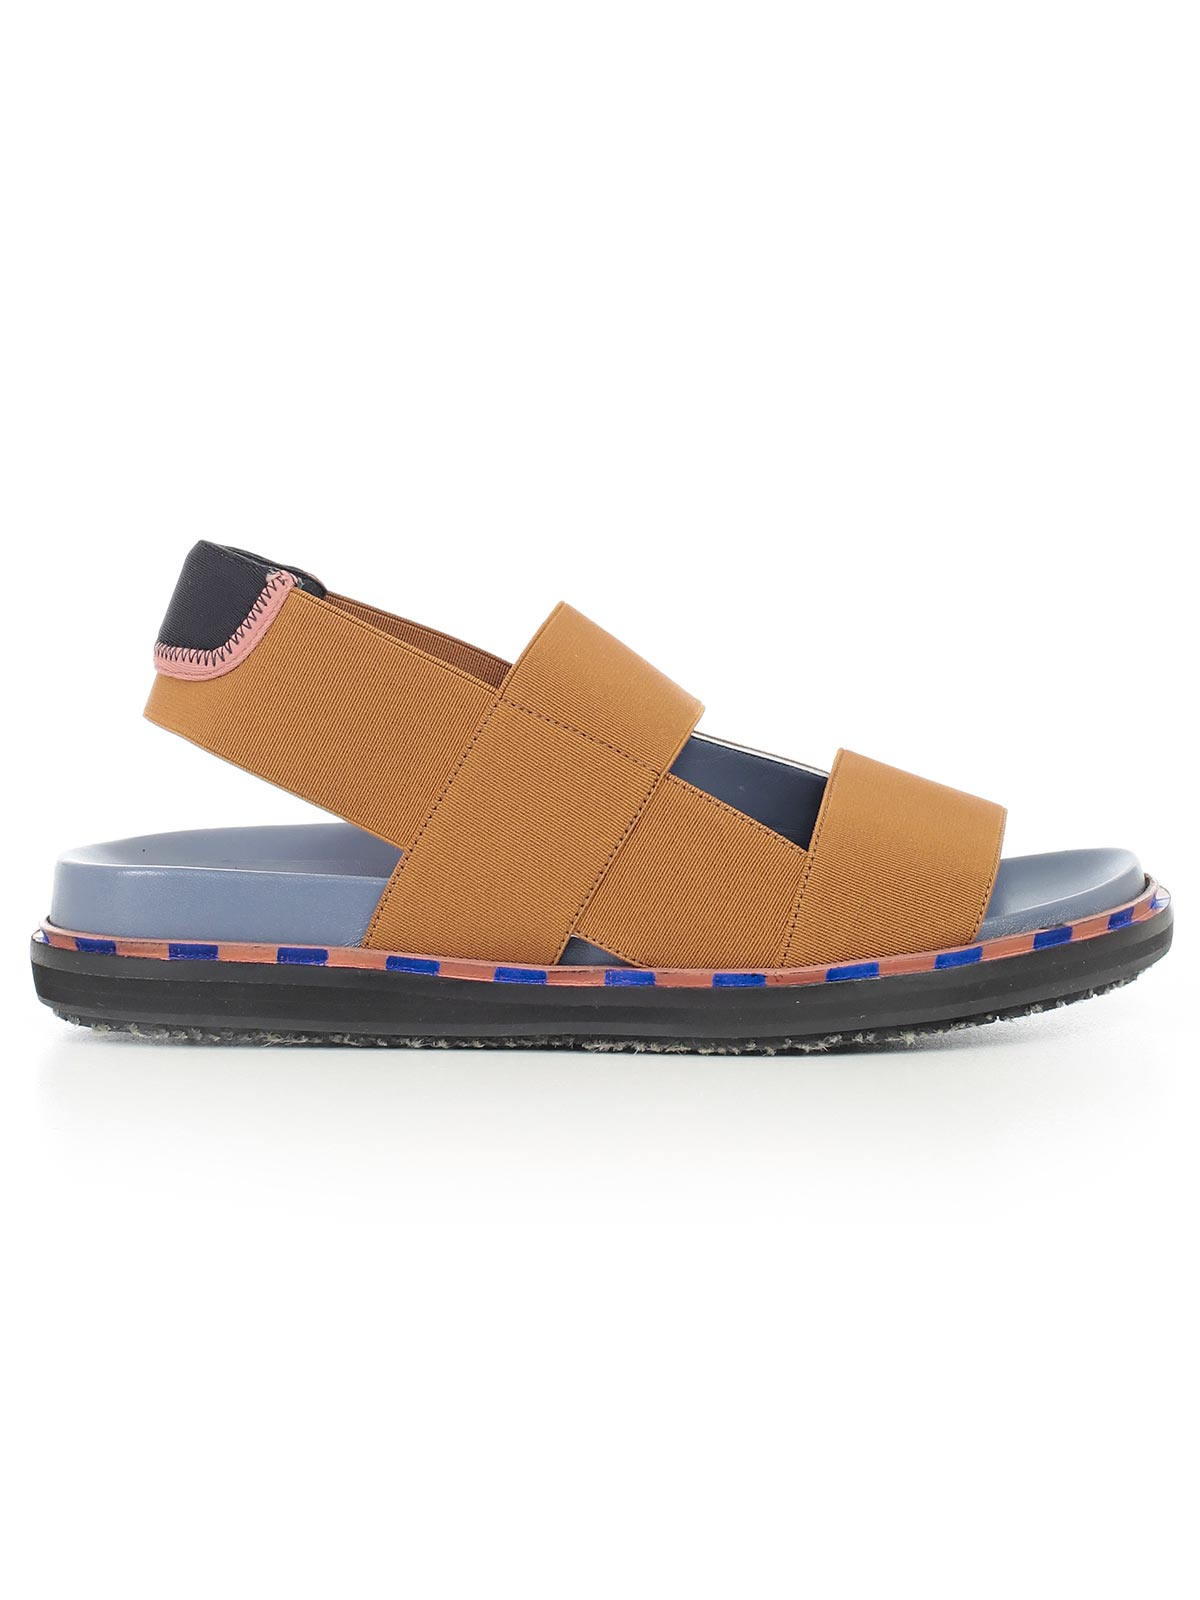 Picture of Marni Sandals